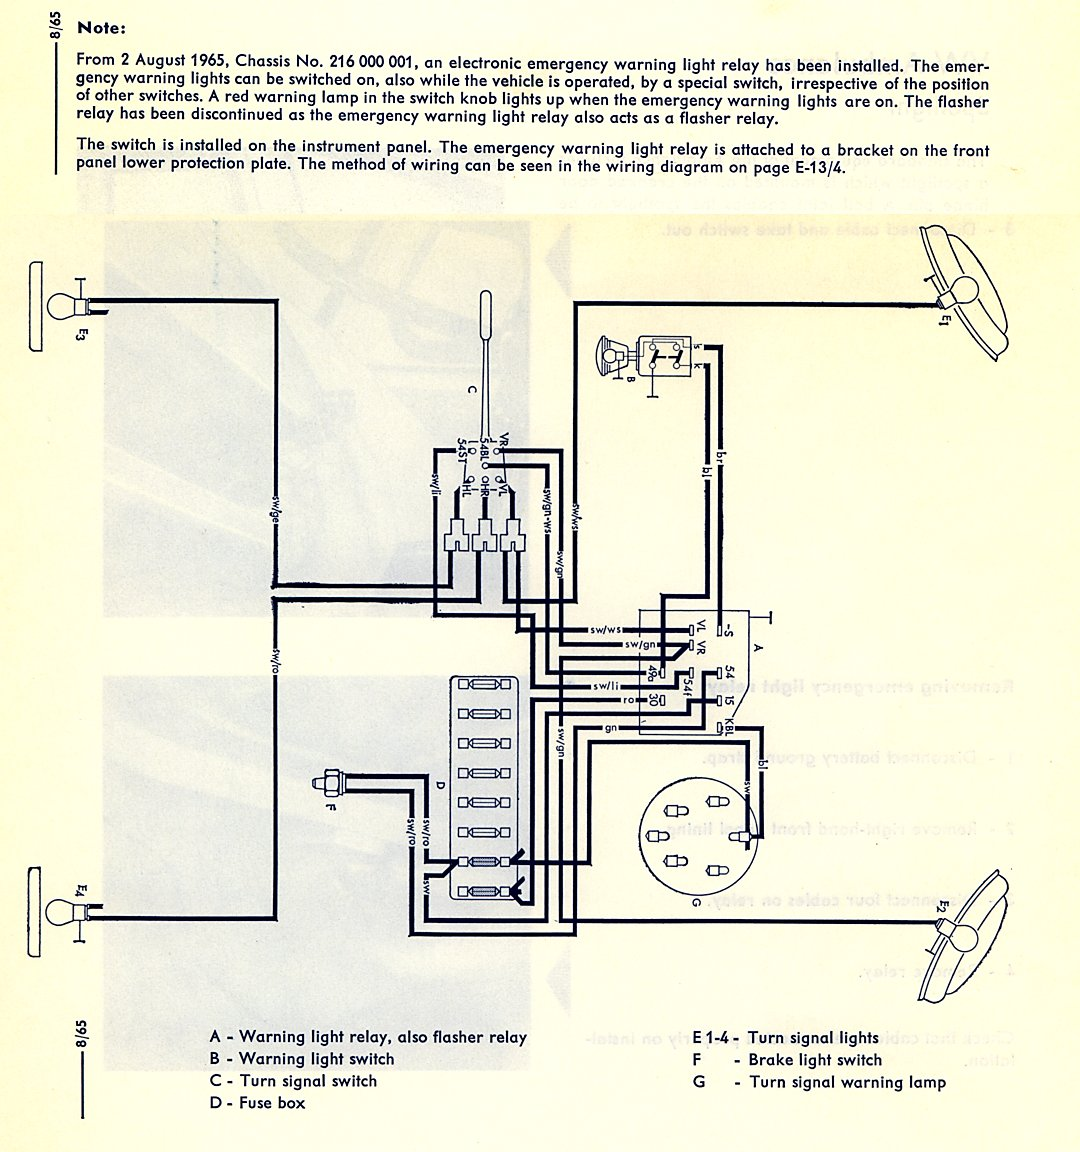 TheSamba.com :: Type 2 Wiring Diagrams on dome light circuit diagram, oil pressure gauge diagram, chevy truck vacuum diagram, dome light cover, dome light assembly, dome lights for cars, activity diagram, garage door diagram, dome light relay, 2002 nissan frontier parts diagram, 1991 mazda b2200 light switch diagram, 2000 nissan frontier fuse box diagram, 1998 subaru forester dome light diagram, 1984 chevy c10 fuse box diagram, dome light switch, 2002 gmc envoy firing order diagram, dome light repair, dome light fuse, 2005 honda accord fuse box diagram, 2000 nissan frontier belt diagram,